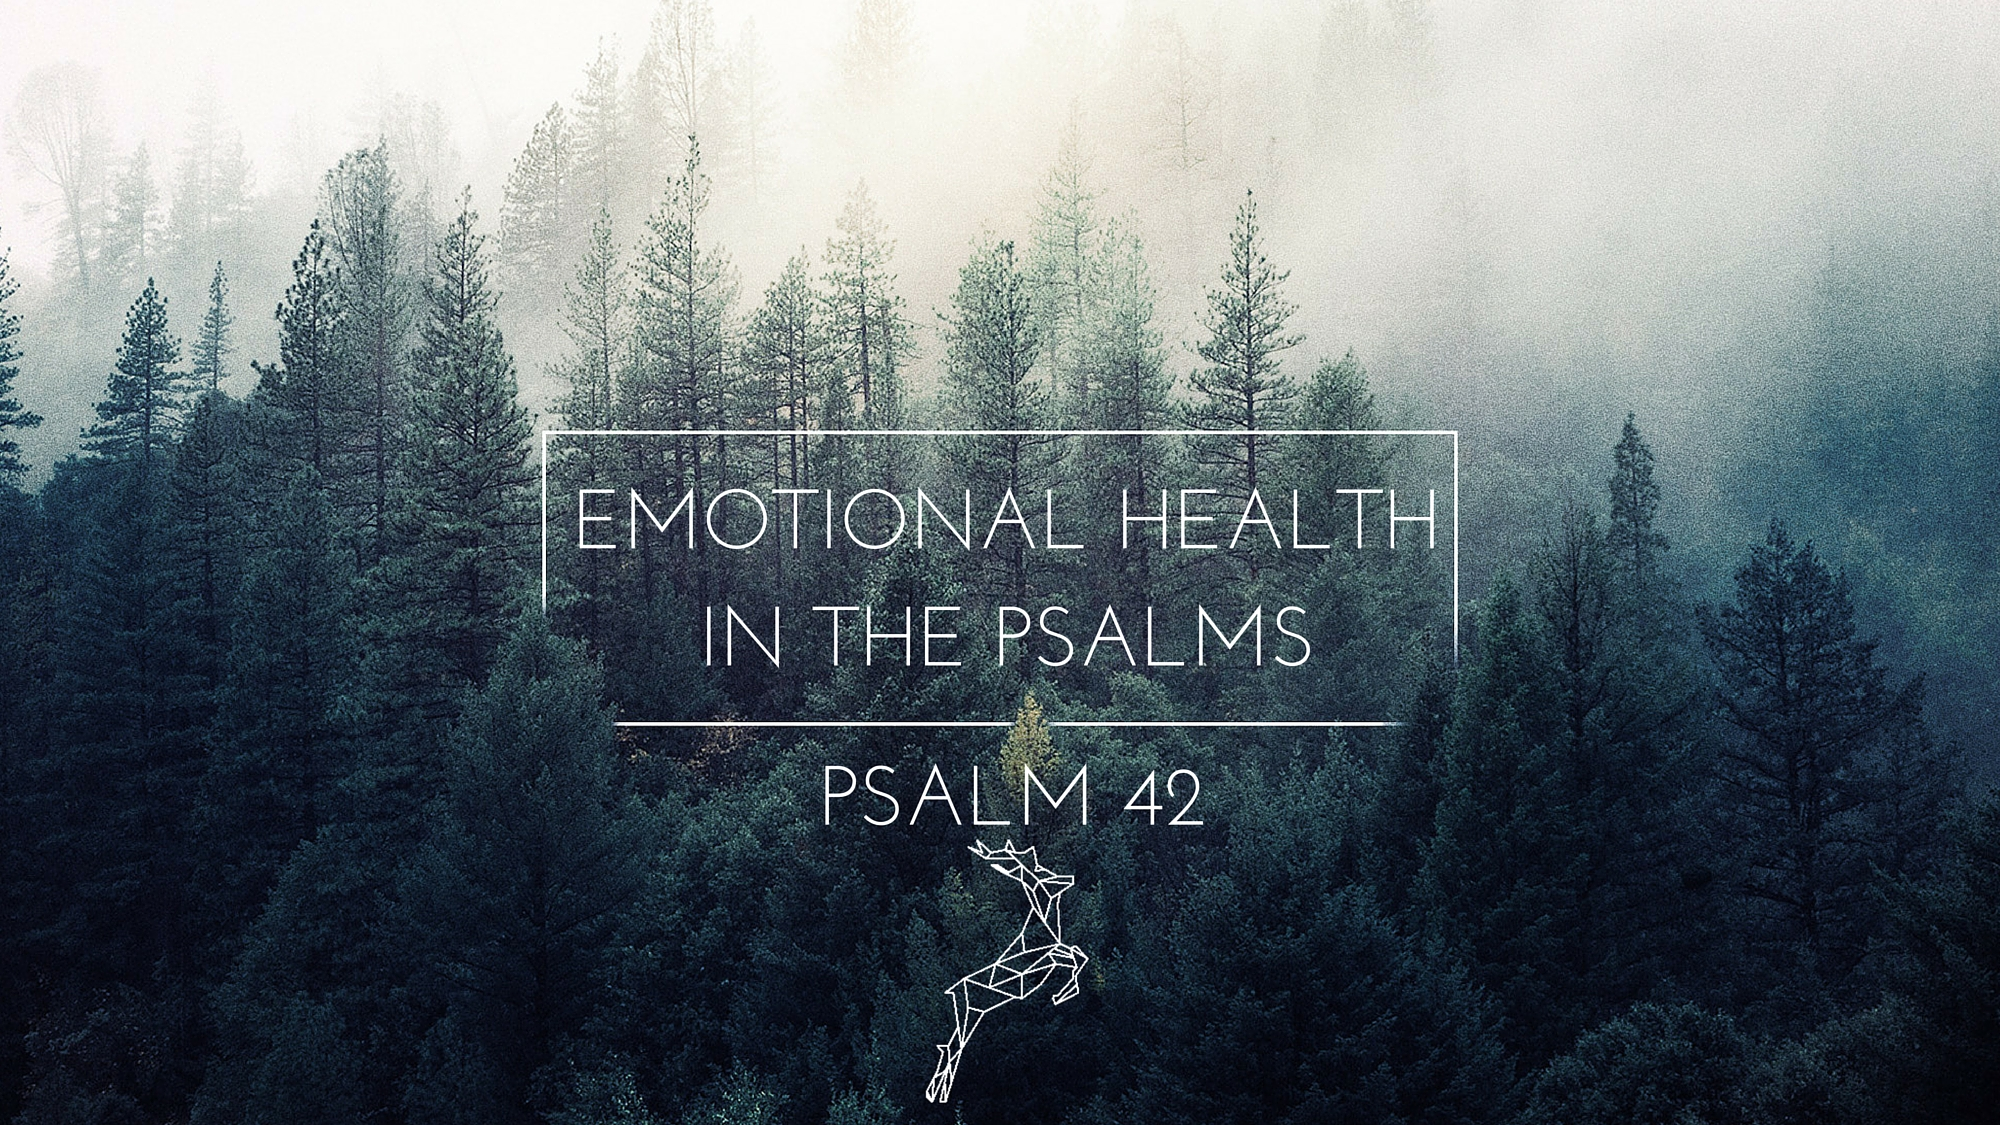 EMOTIONALHEALTH TITLE.jpg